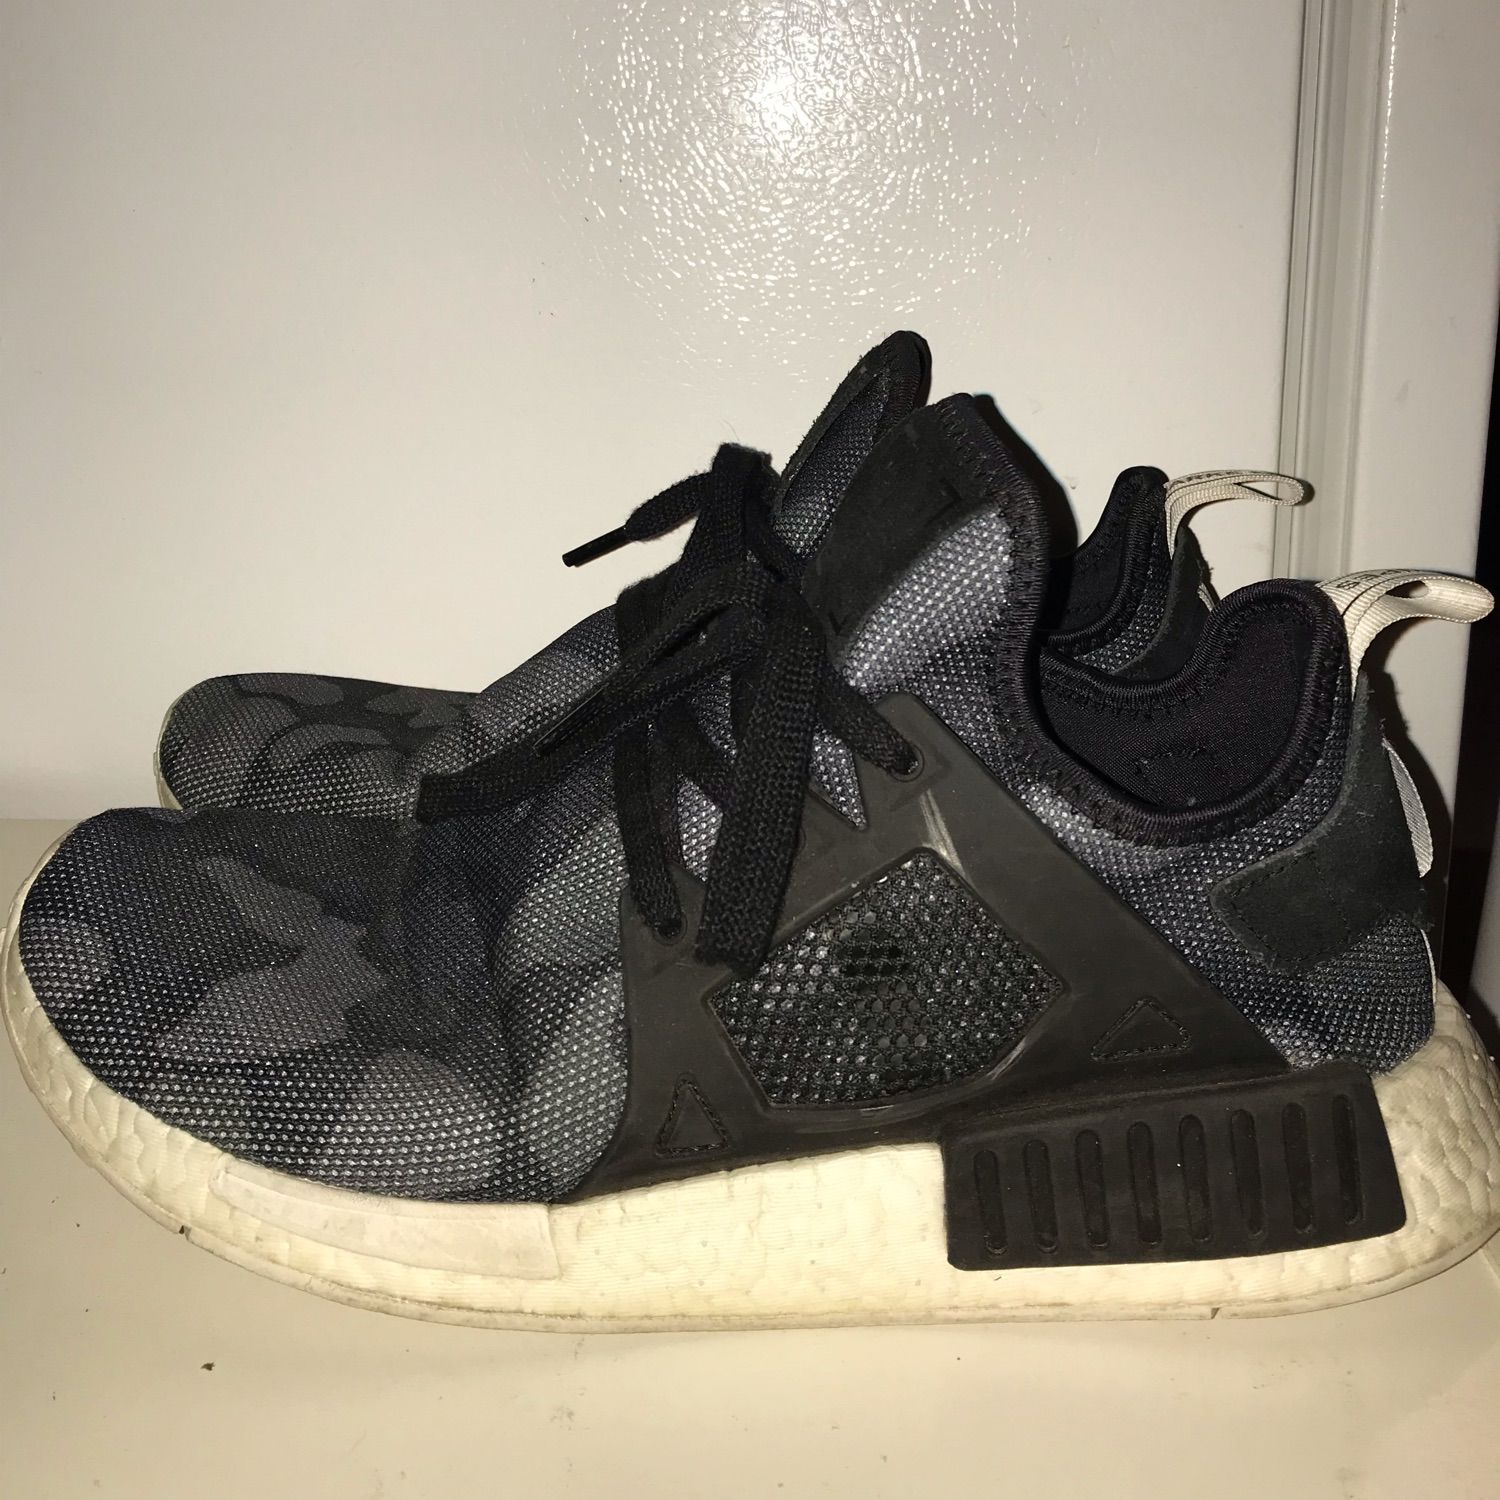 size 40 5356f a69eb Nmd Xr1 Duck Camo